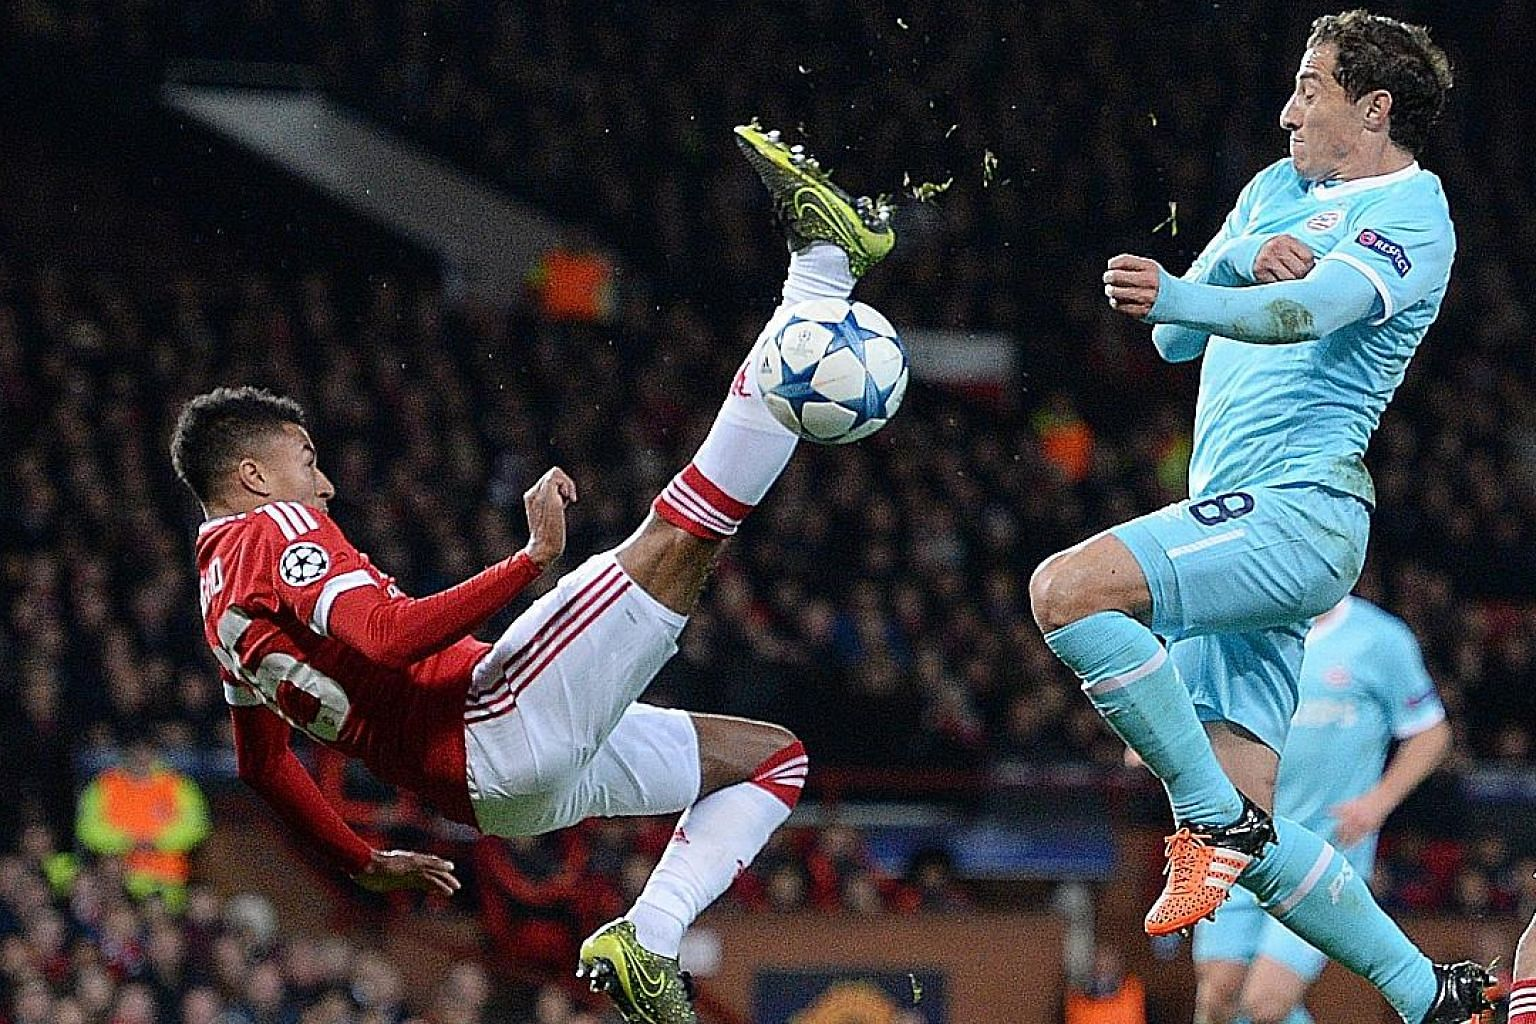 There were few clear-cut chances to score, with this overhead kick from Jesse Lingard (left) failing to find the net against PSV Eindhoven. The 0-0 draw at Old Trafford was greeted by boos from the exasperated crowd.